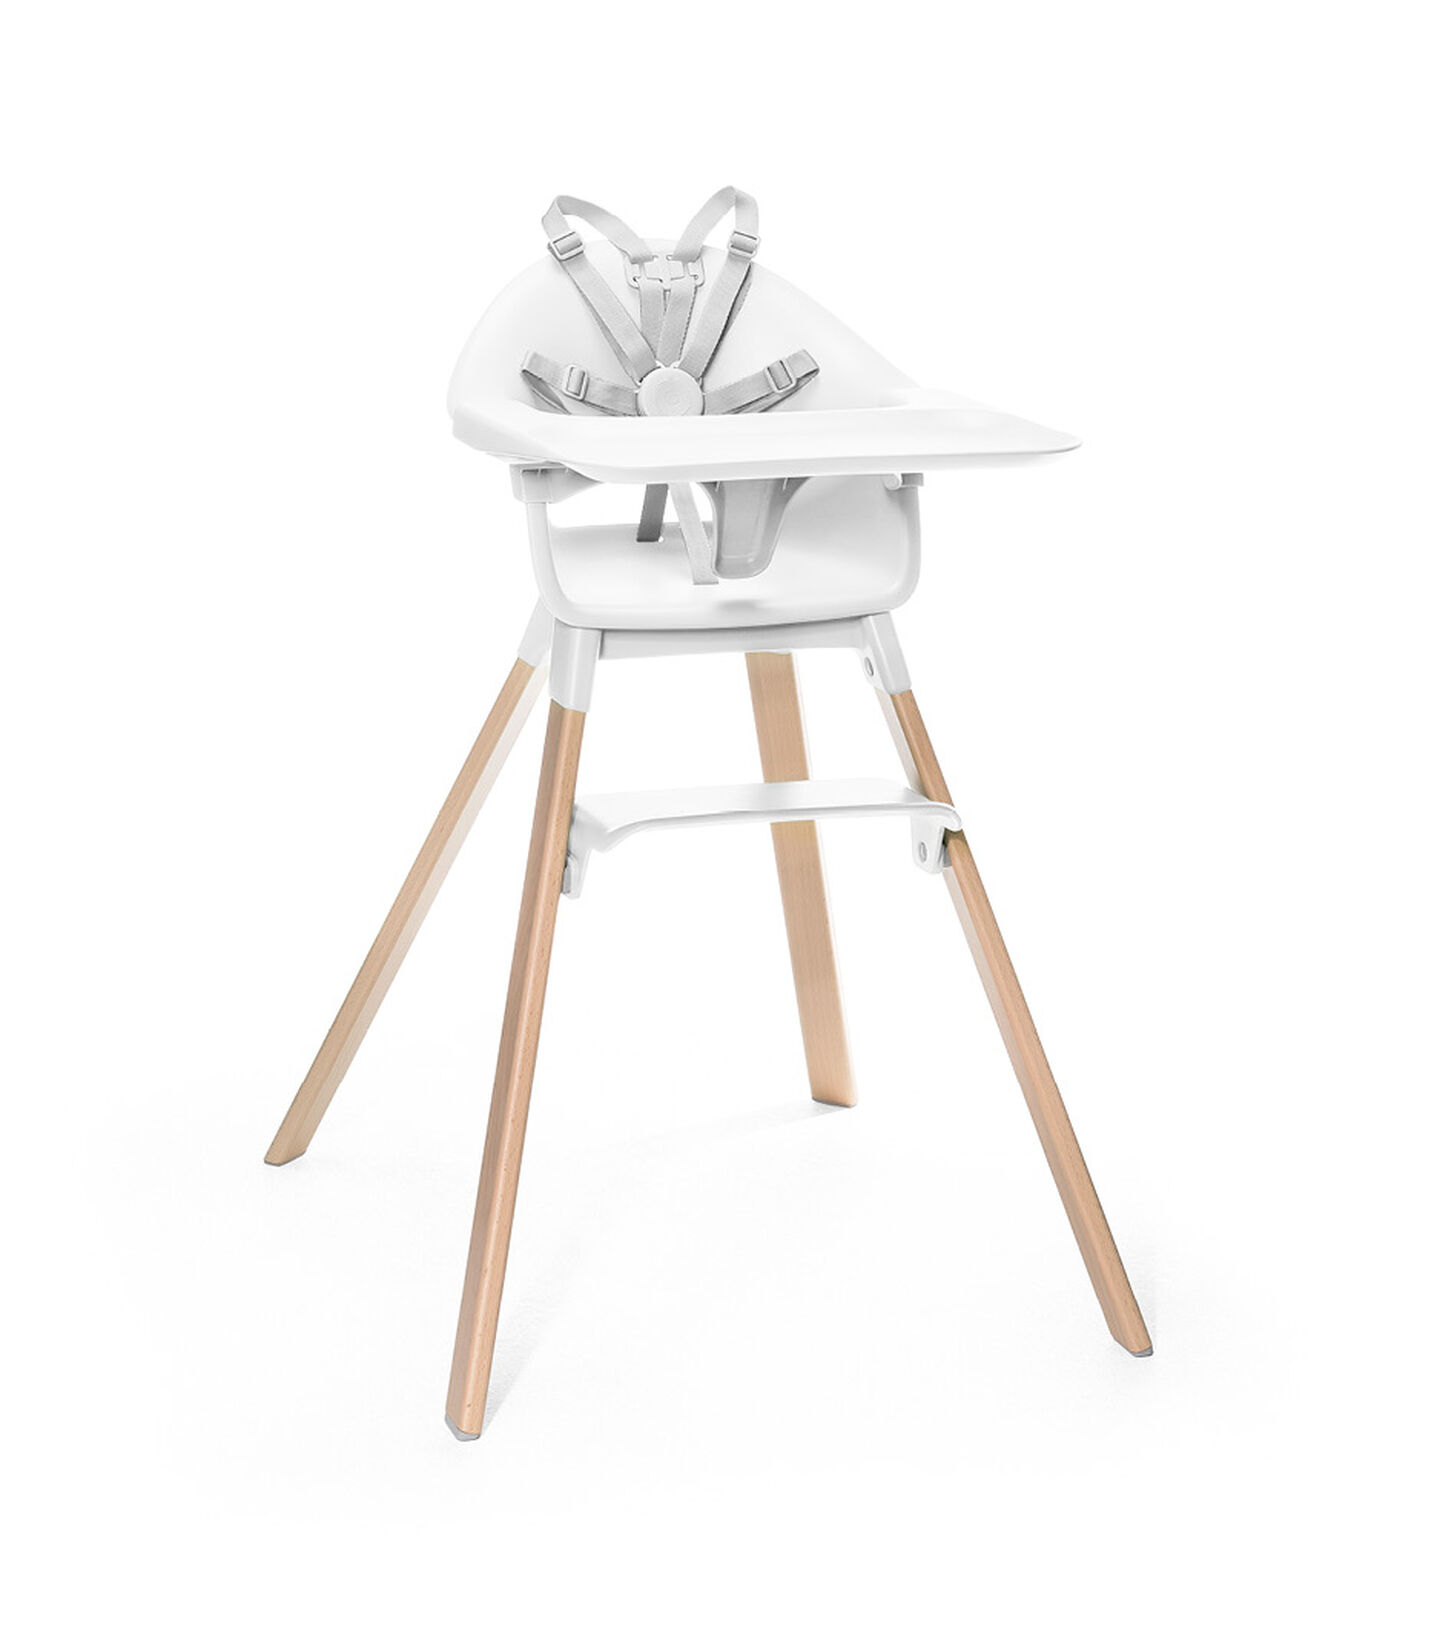 Stokke® Clikk™ High Chair. Natural Beech wood and White plastic parts. Harness and Tray attached. view 2